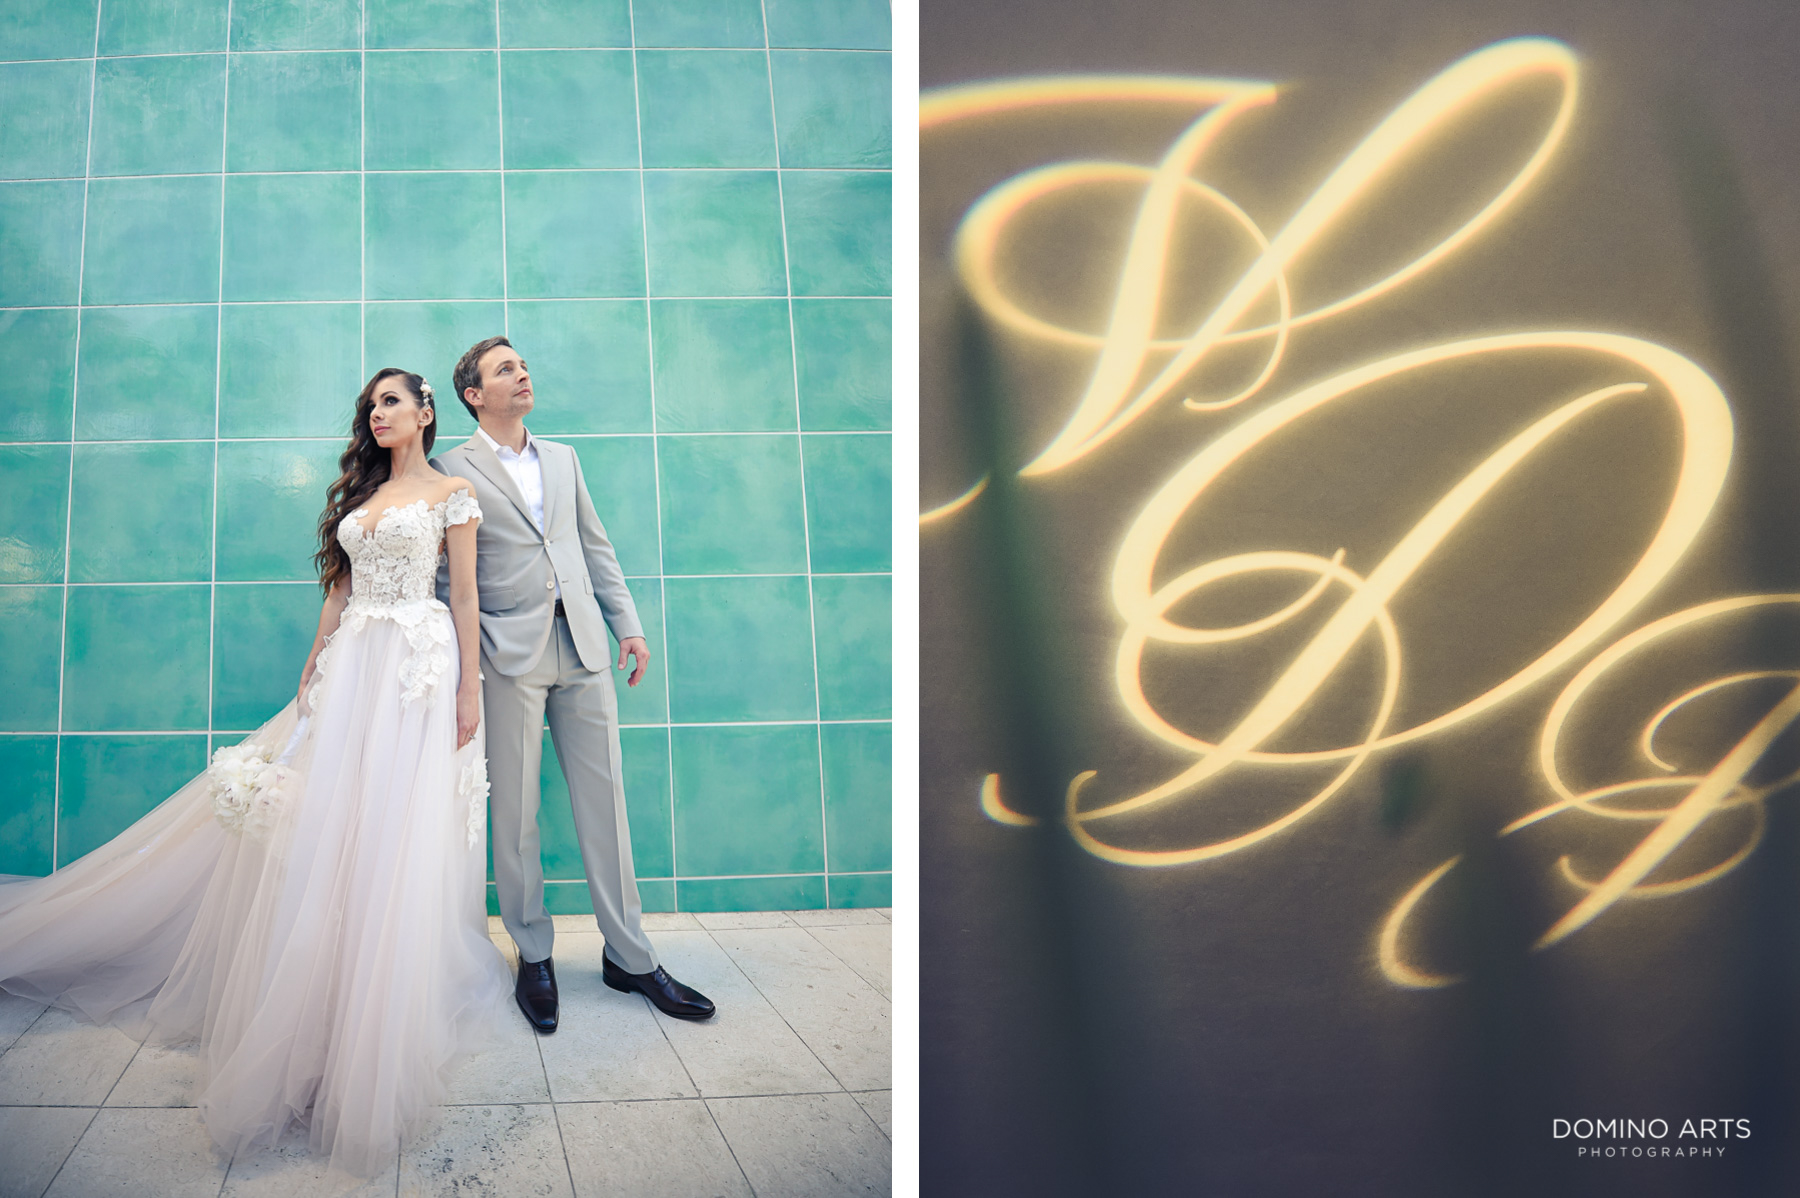 Creative bride and groom pictures at beach wedding Faena Hotel Miami